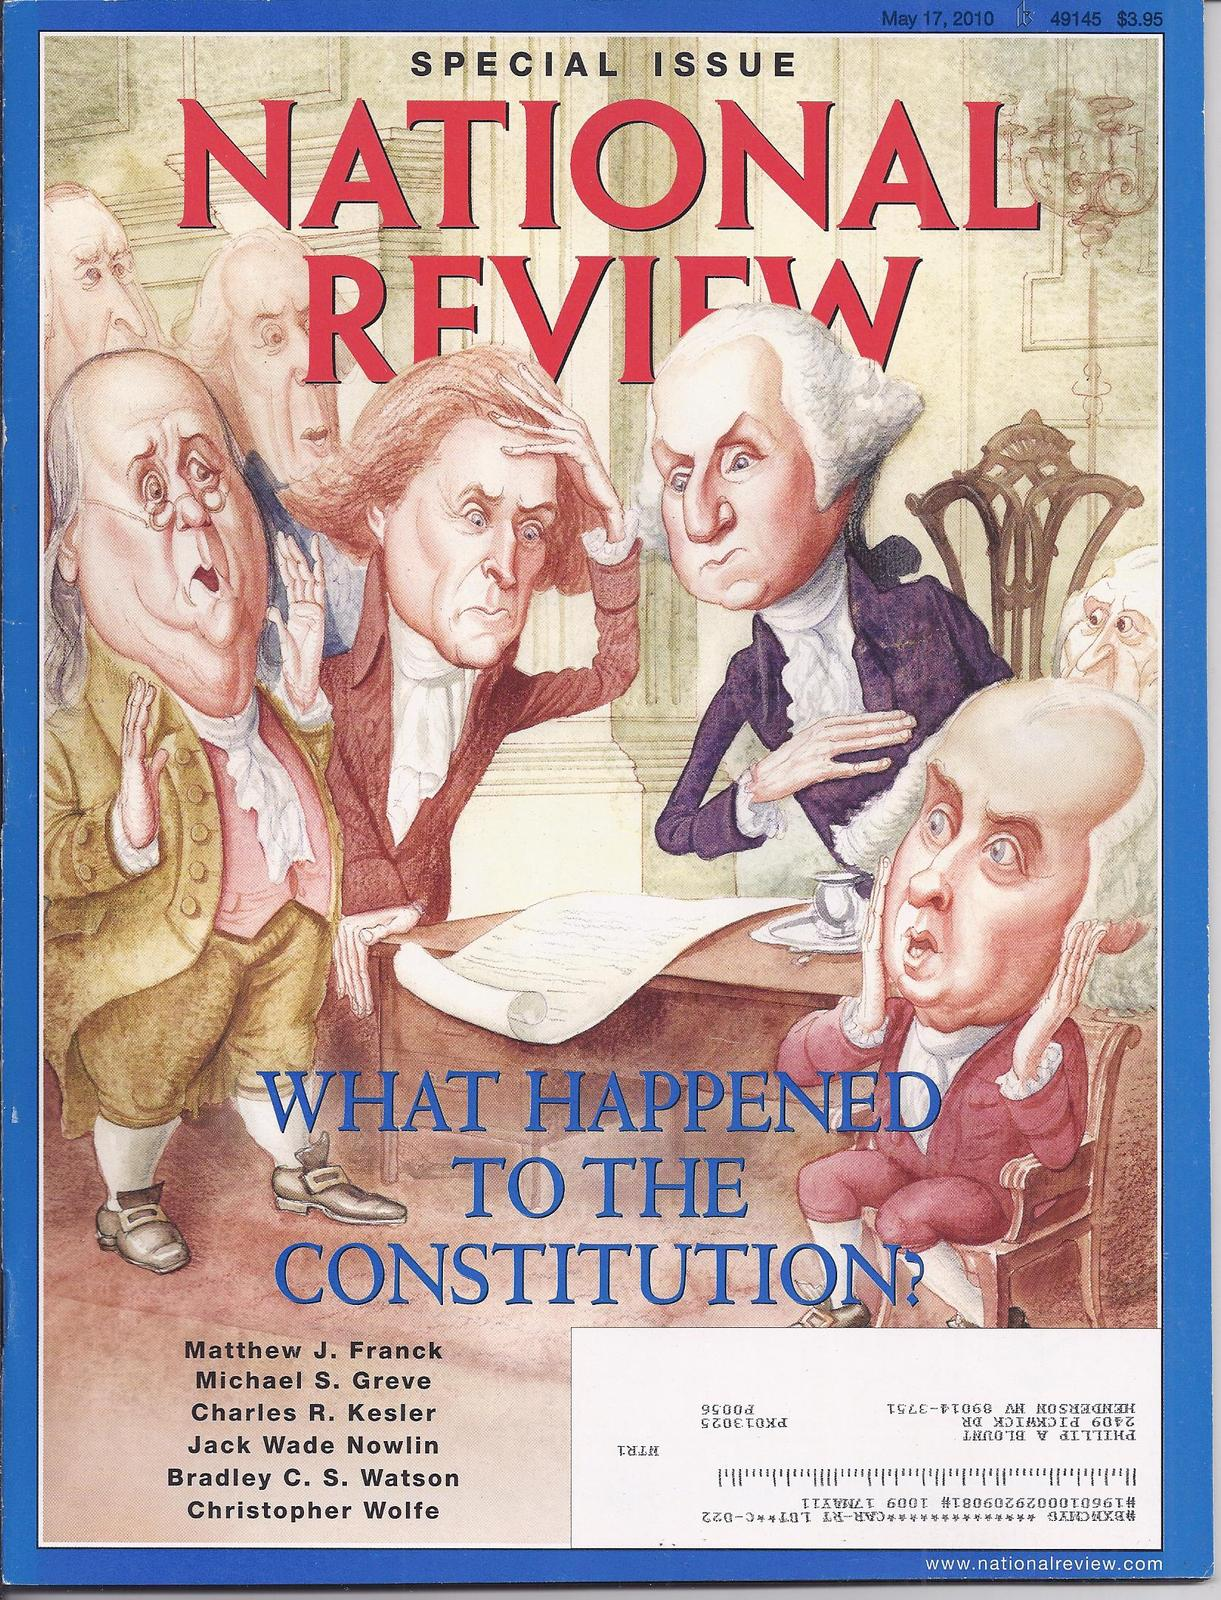 Primary image for NAVAL REVIEW Magazine May 2010: What Happened to the CONSTITUTION?